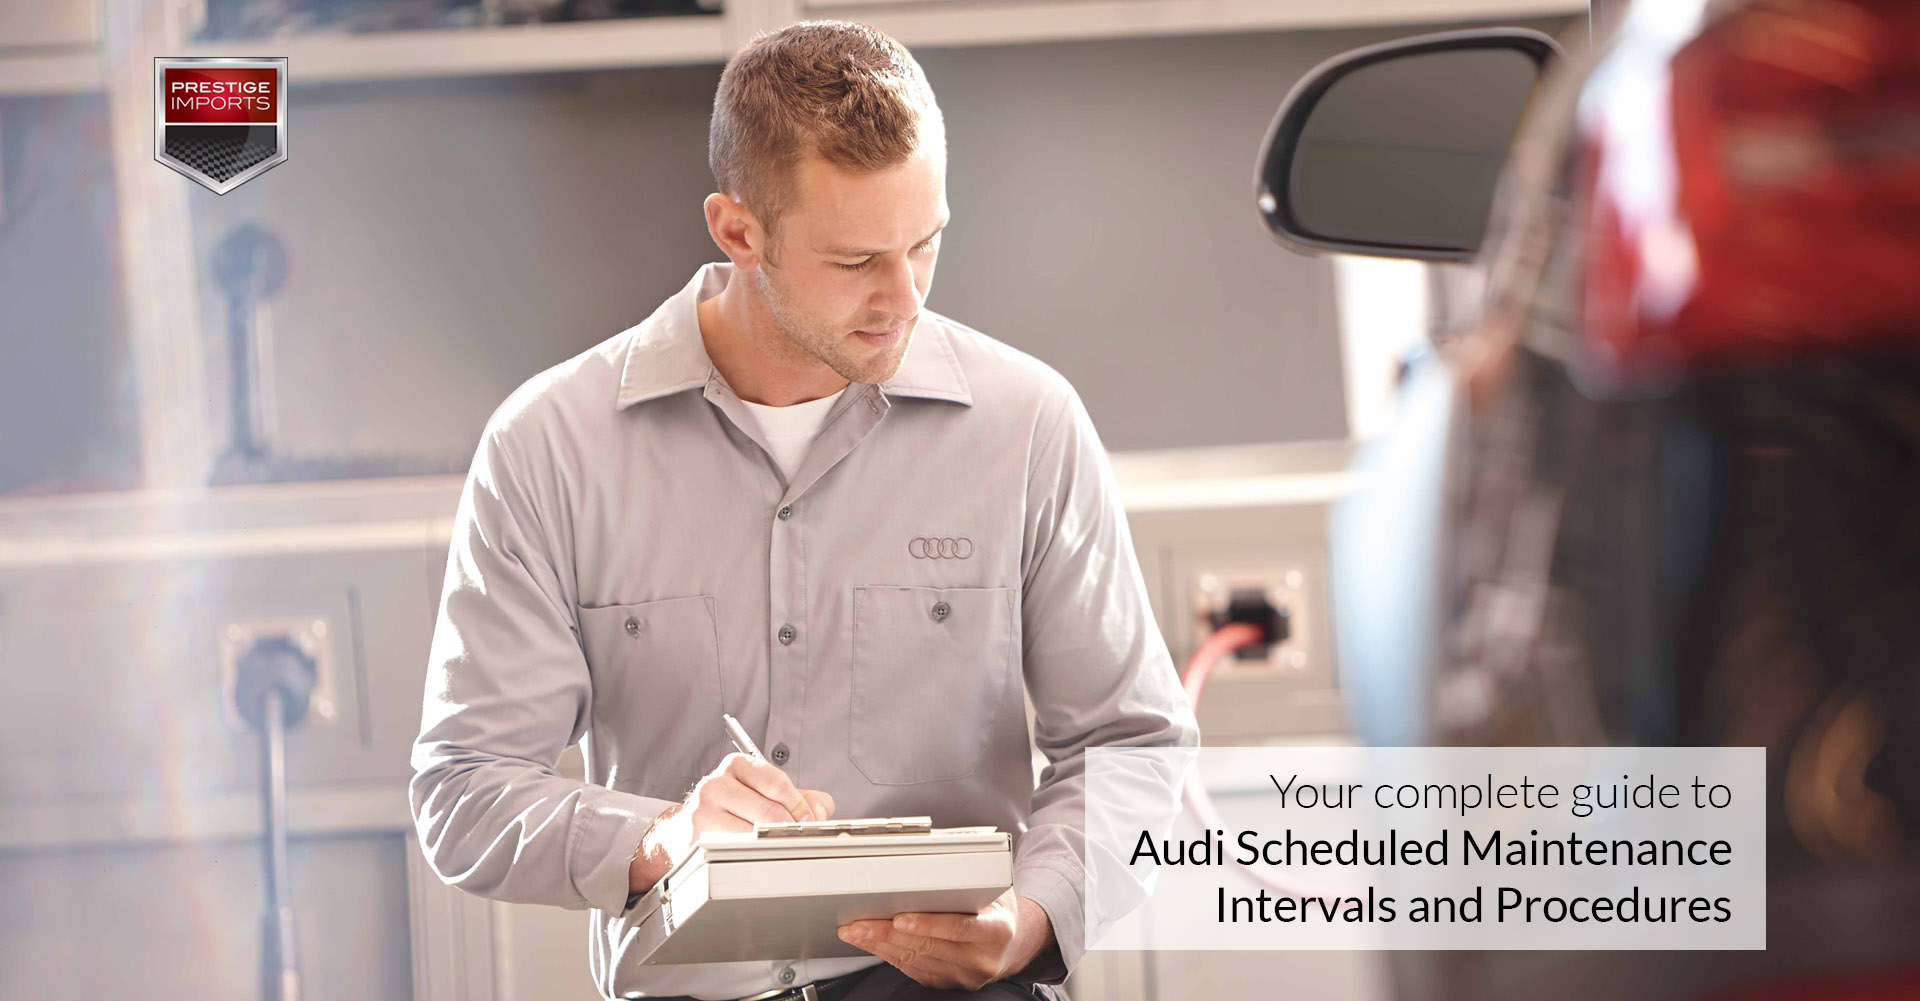 Audi Scheduled Maintenance Intervals And Procedures For